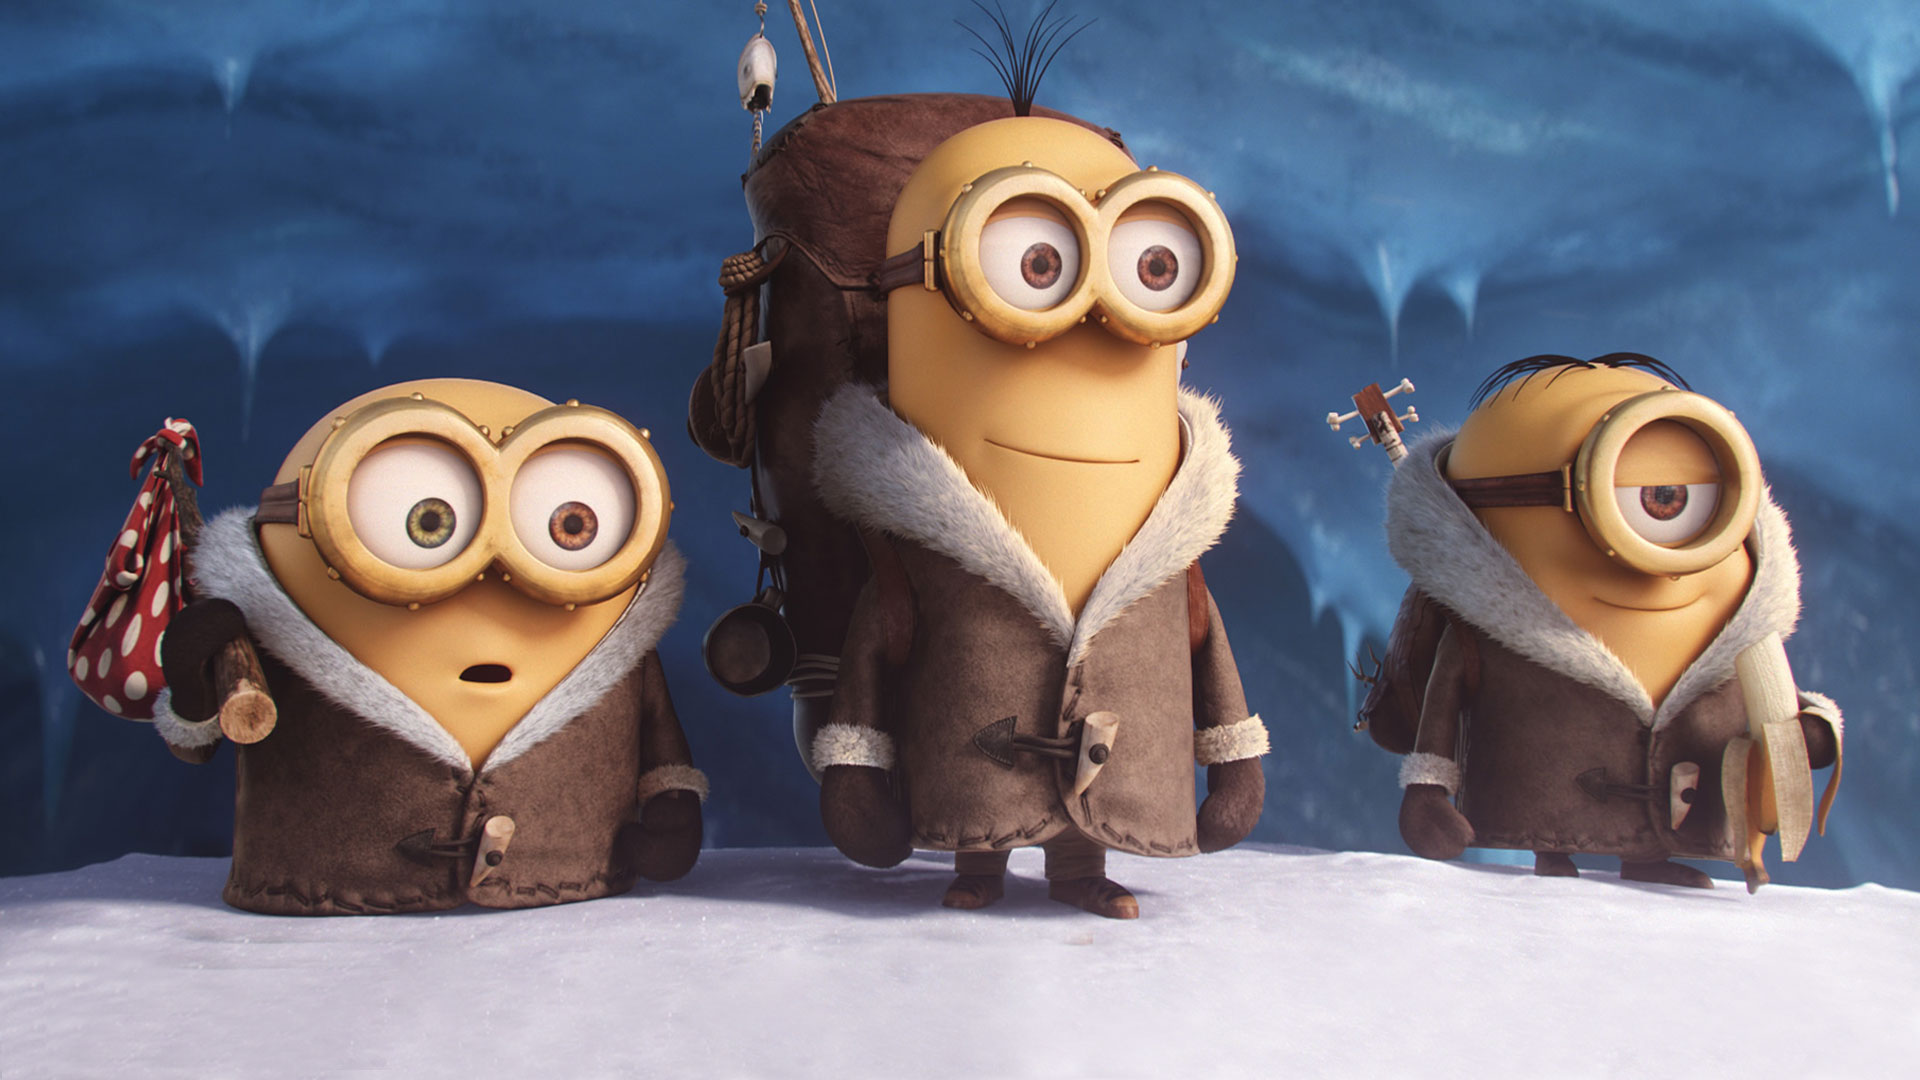 A-Cute-Collection-Of-Minions-Movie-Desktop-Backgrounds-wallpaper-wpc5801852